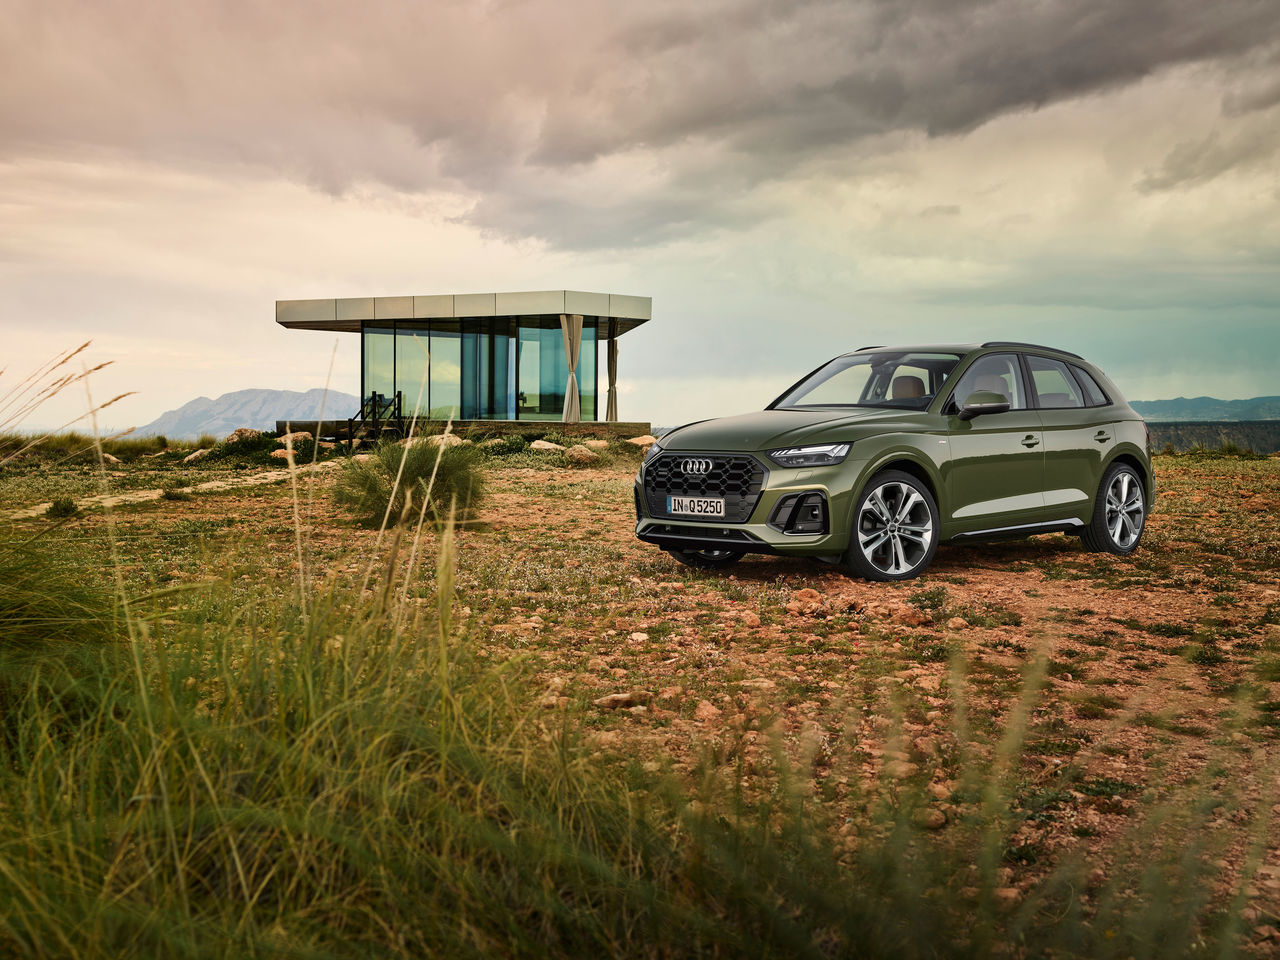 A bestseller gets even better: ||Audi unveils a new look for the Q5